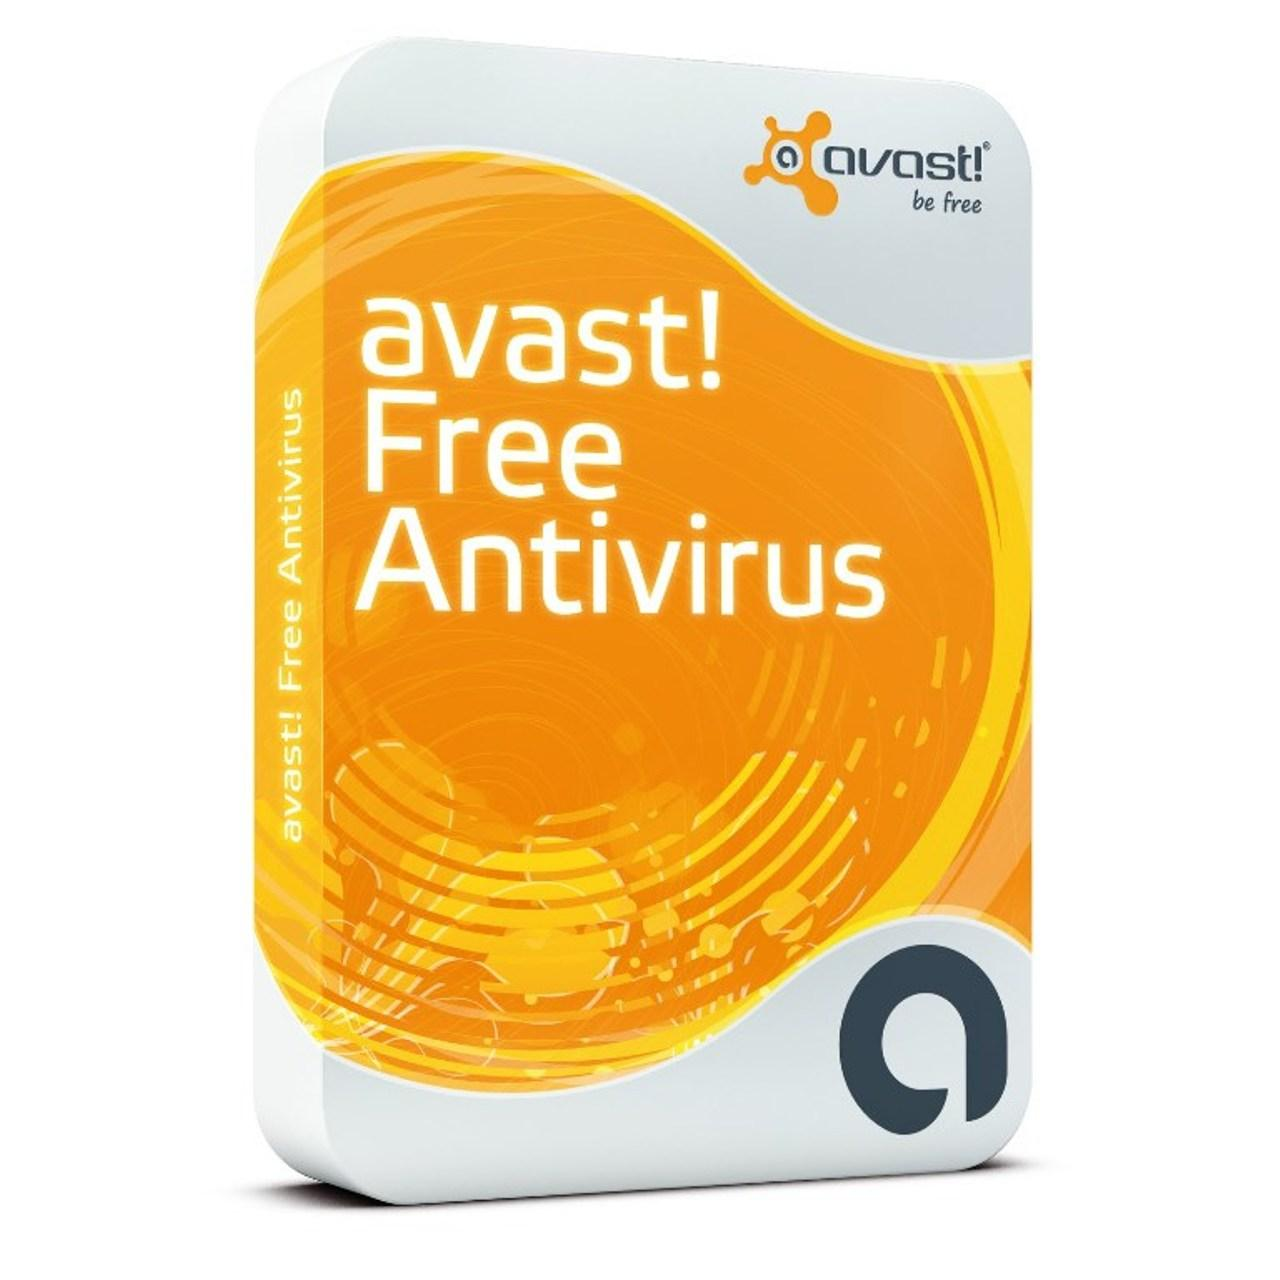 Avast! Free Edition Download avast! version 7 ตัวล่าสุด ฟรี